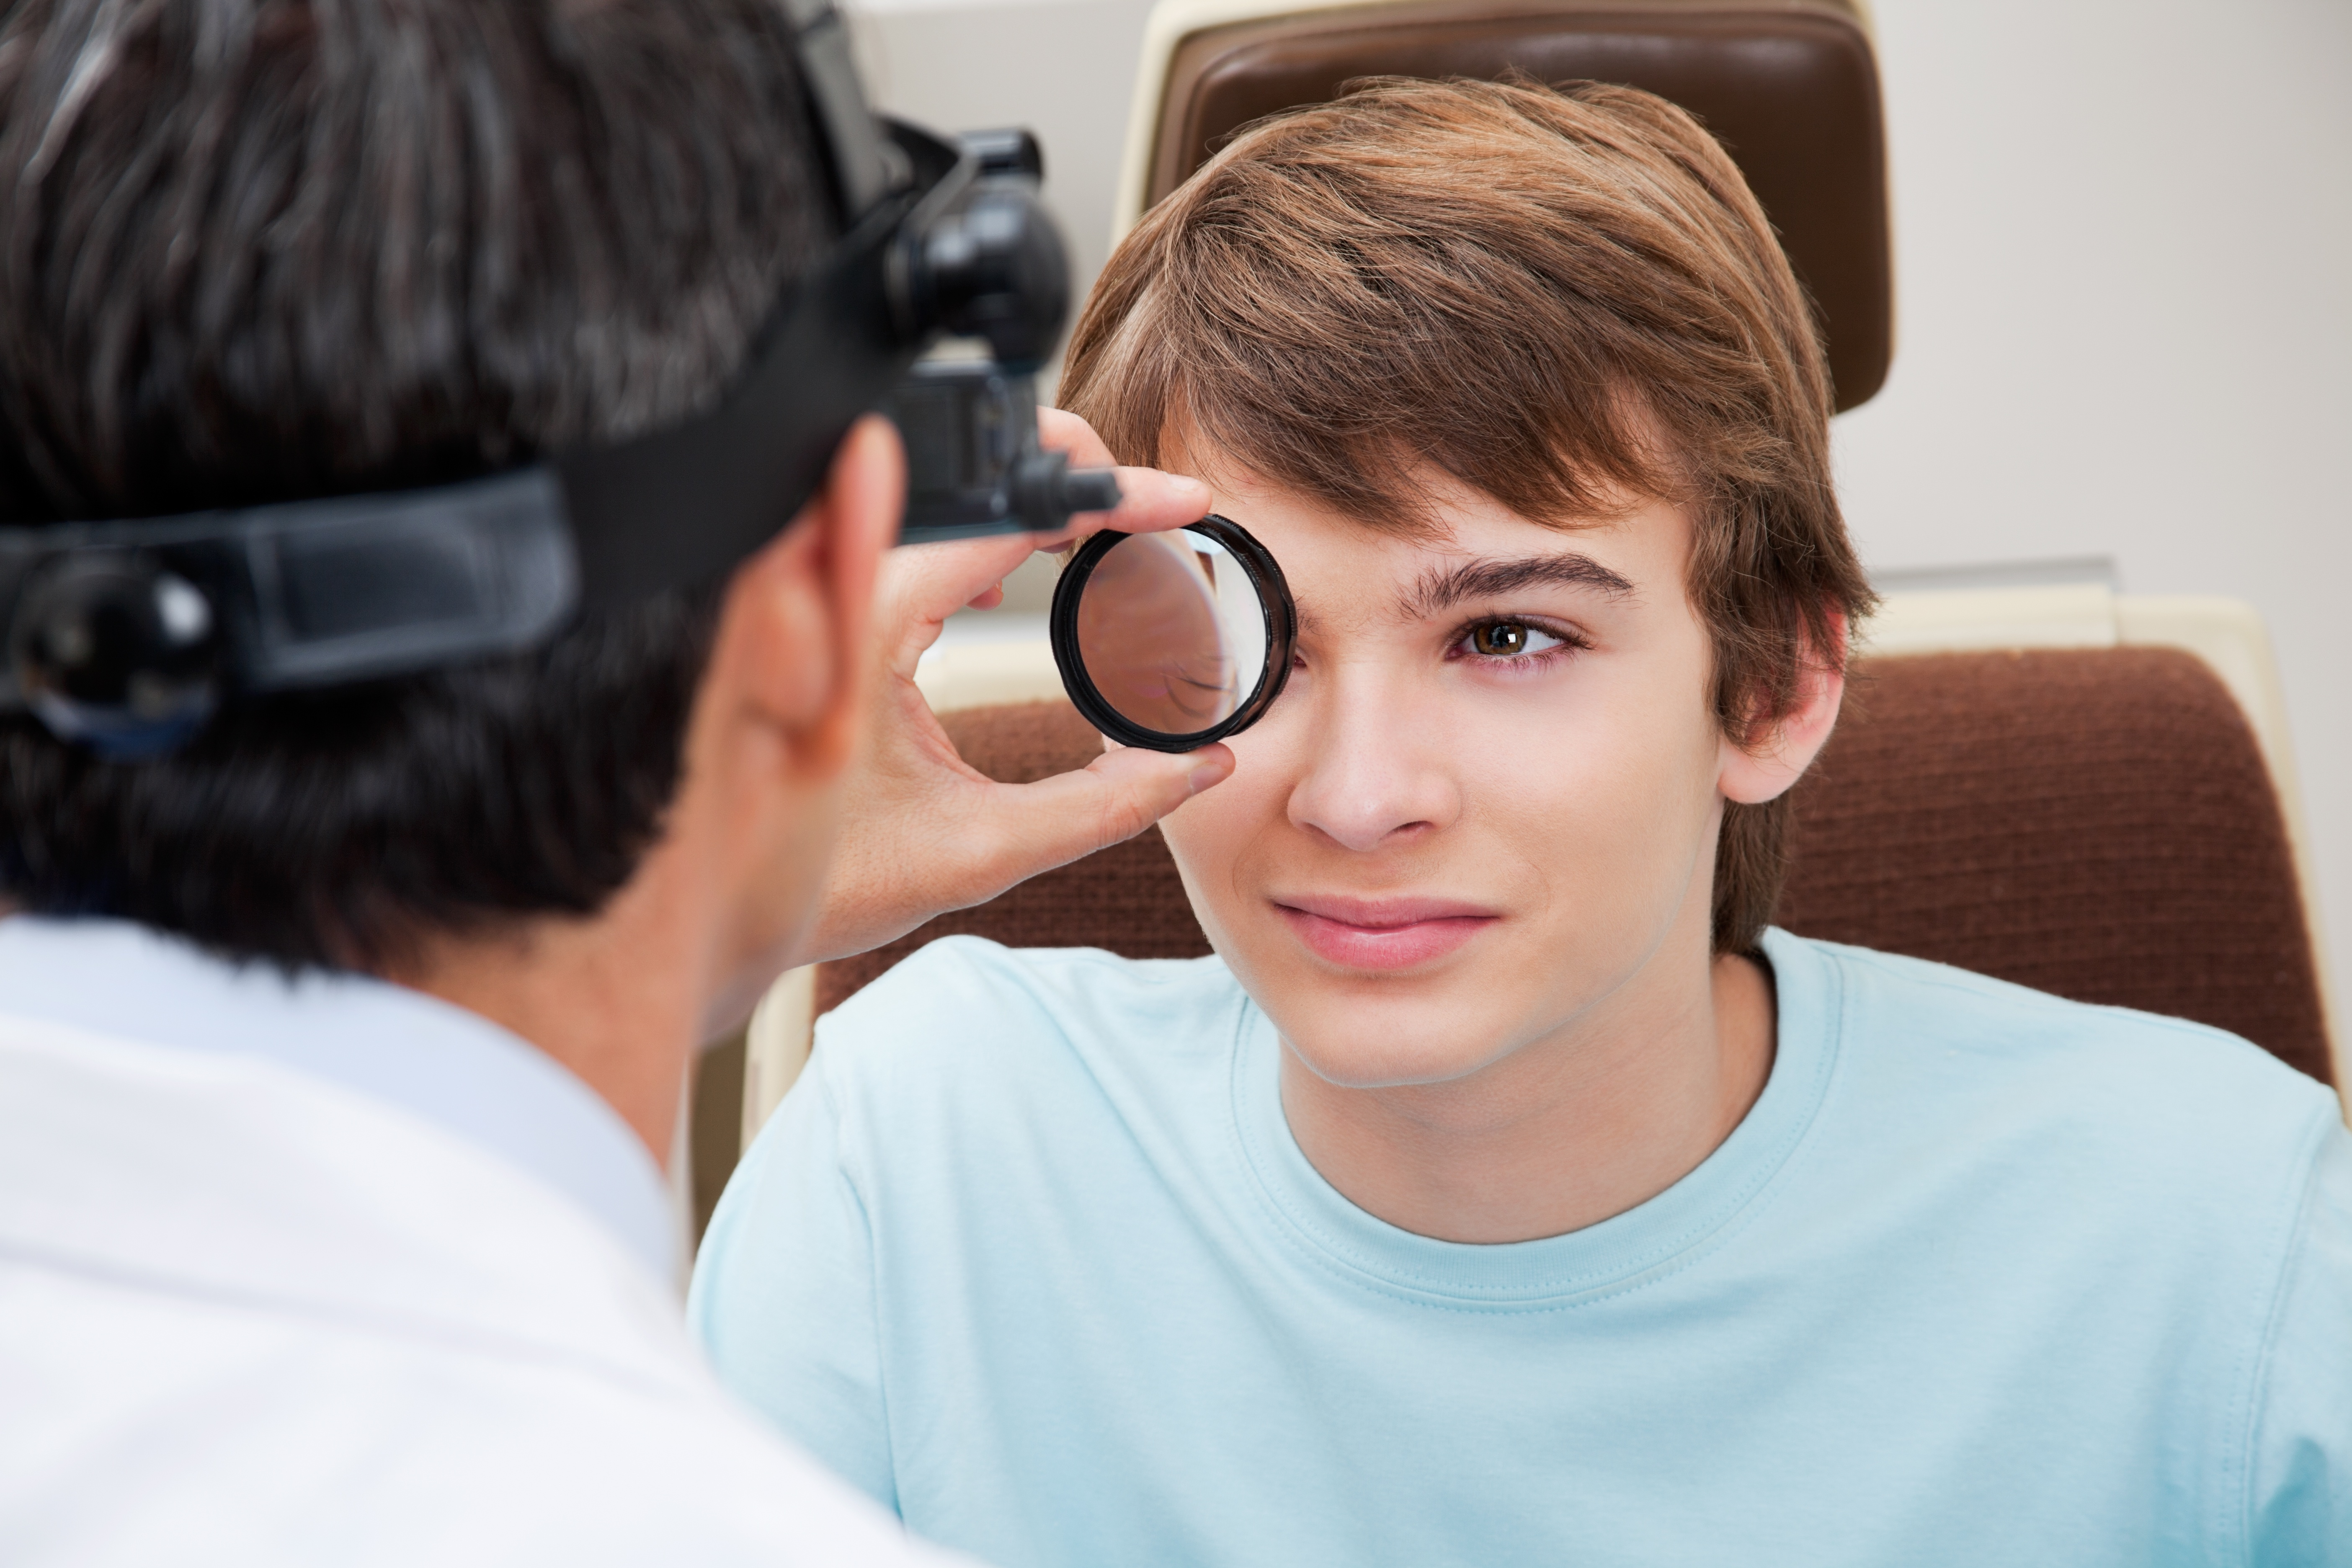 Why does the eye doctor dialte your eyes, eye doctor, vision health, vision insurance, eye health